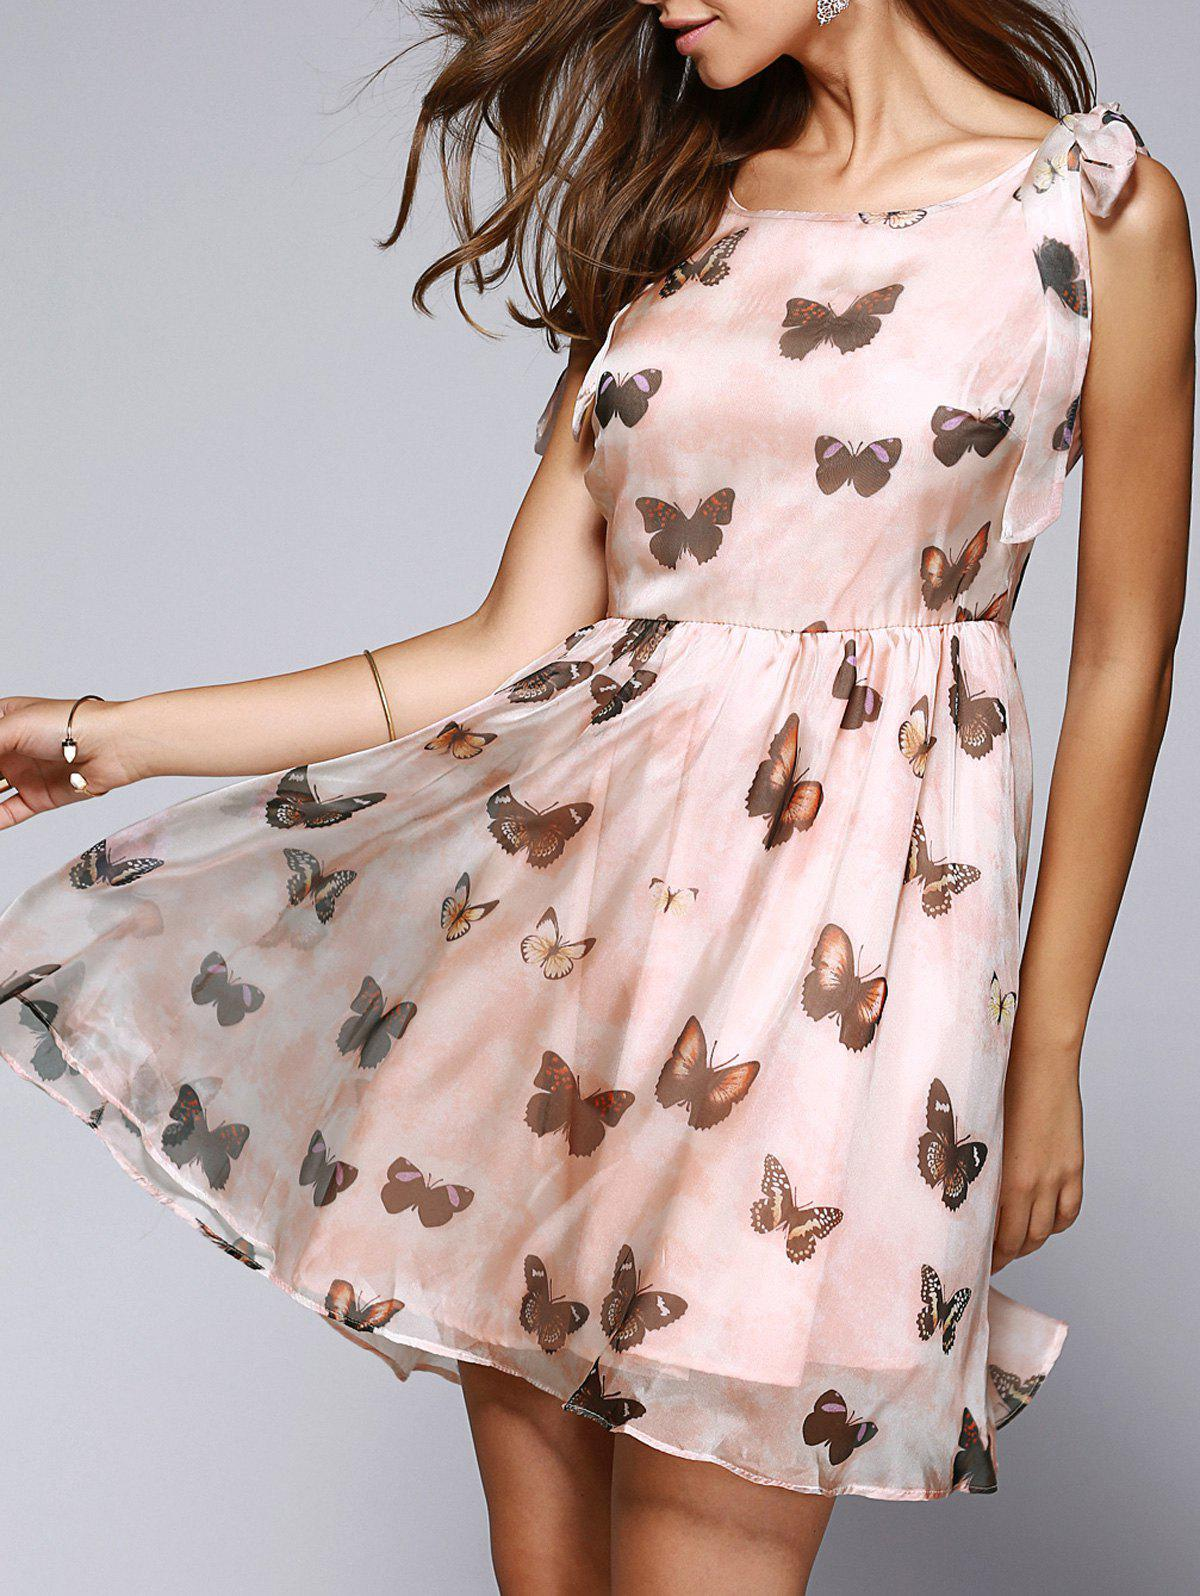 Butterfly Print Bowtie Sleeveless Skater Dress